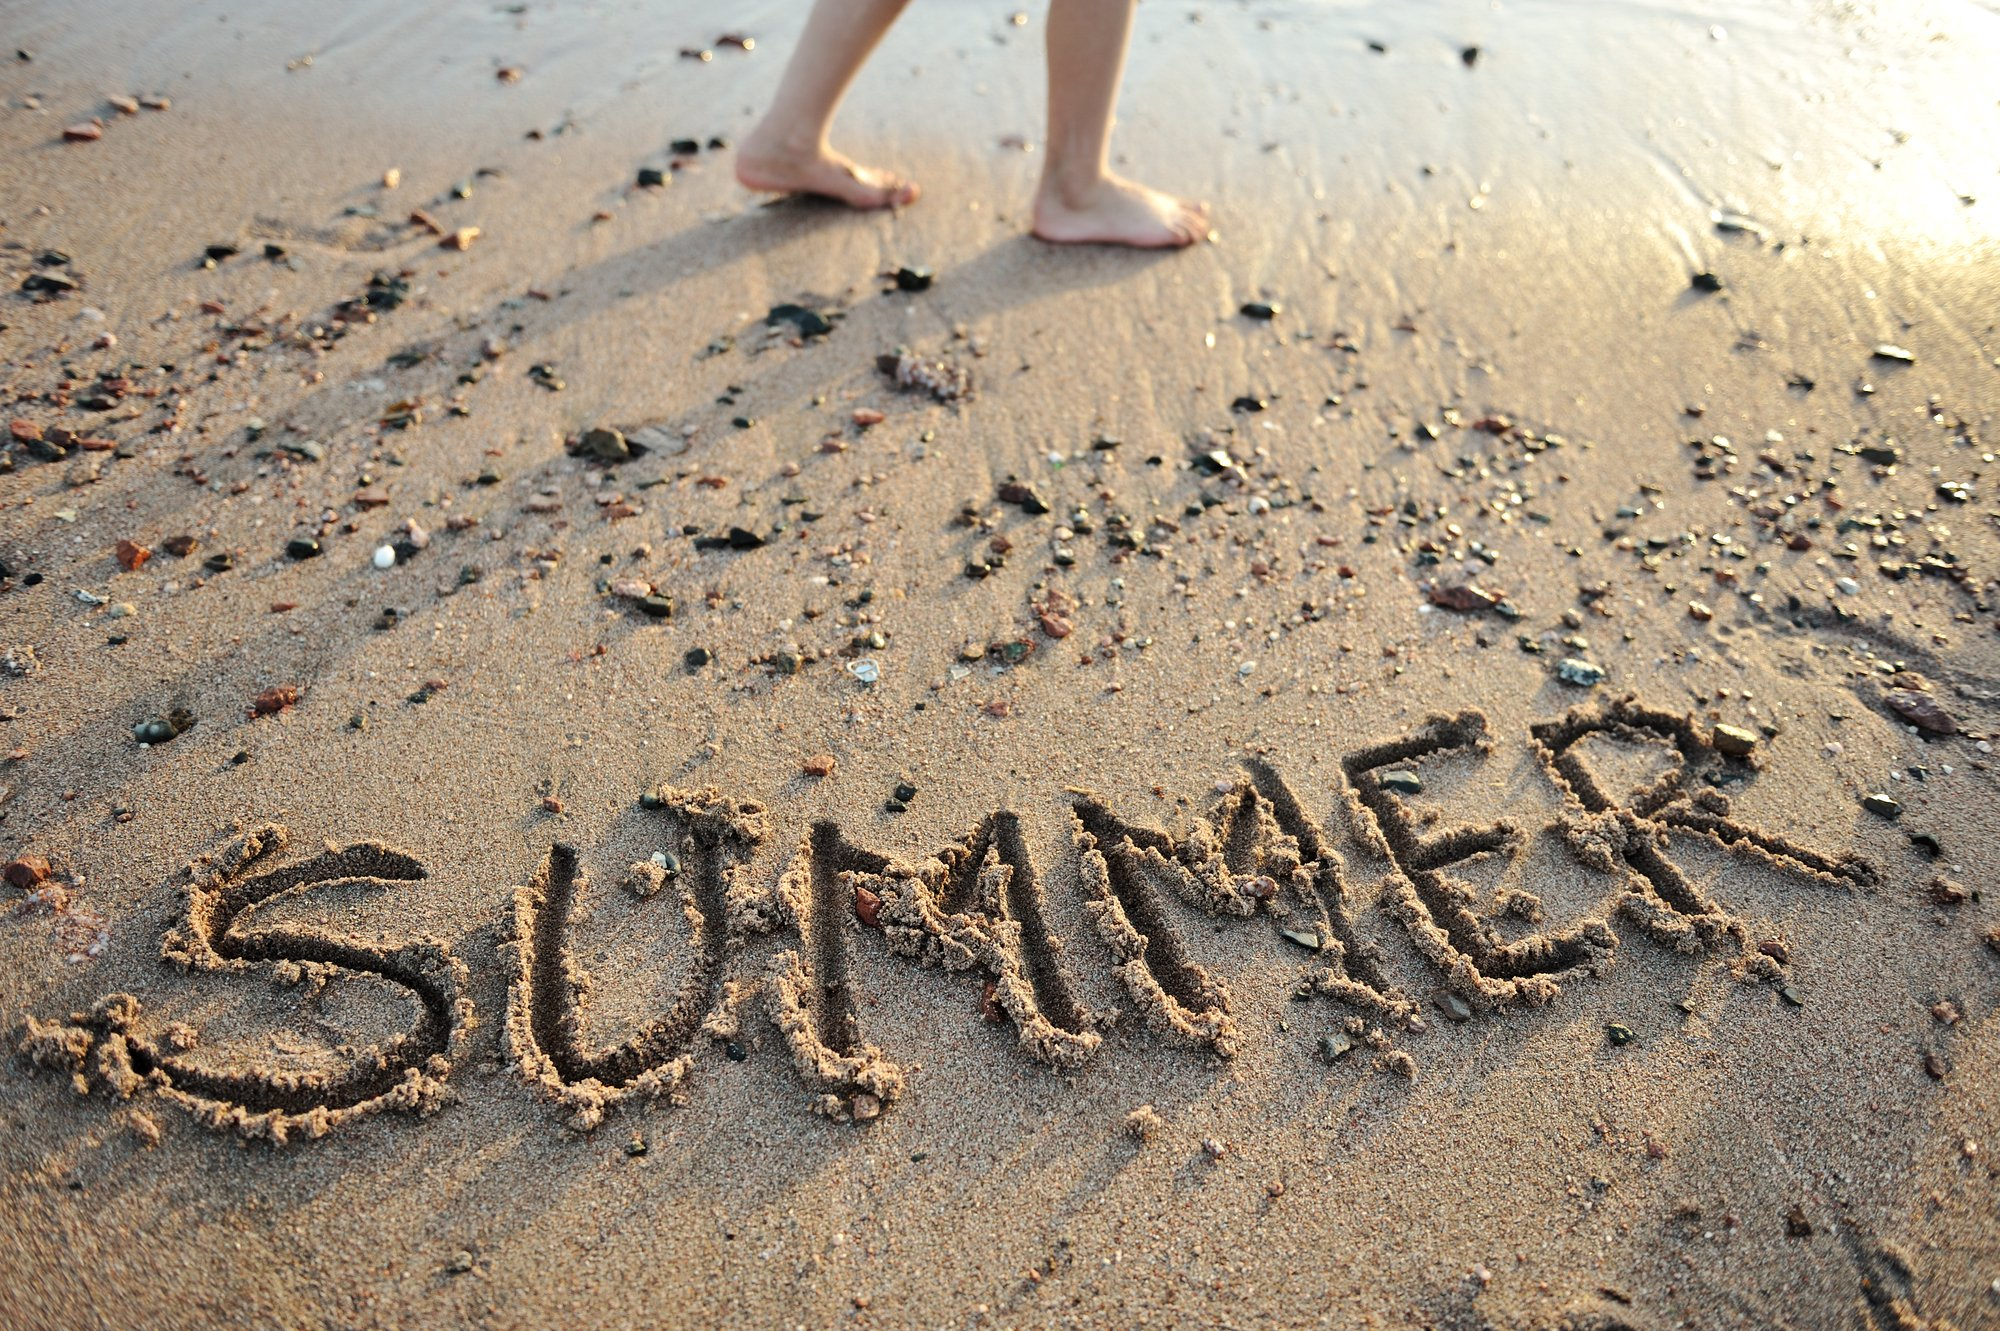 Choosing Summertime for Outpatient Eating Disorder Treatment